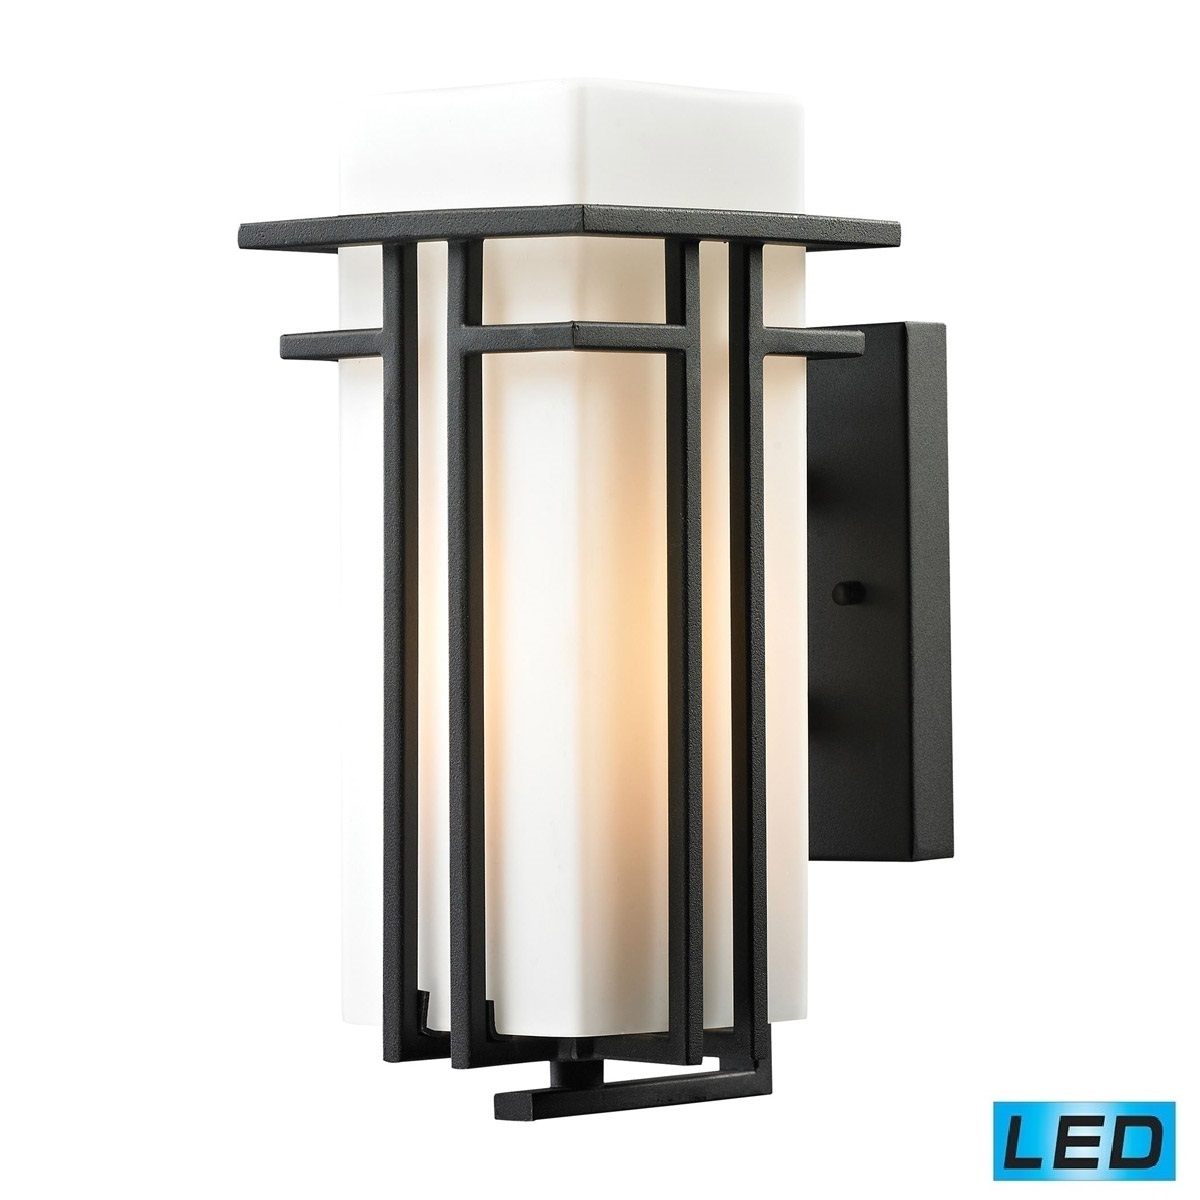 ELK Lighting, Outdoor Light Fixtures,  Brooklyn,New York, Accentuations Brand, Furniture by ABD